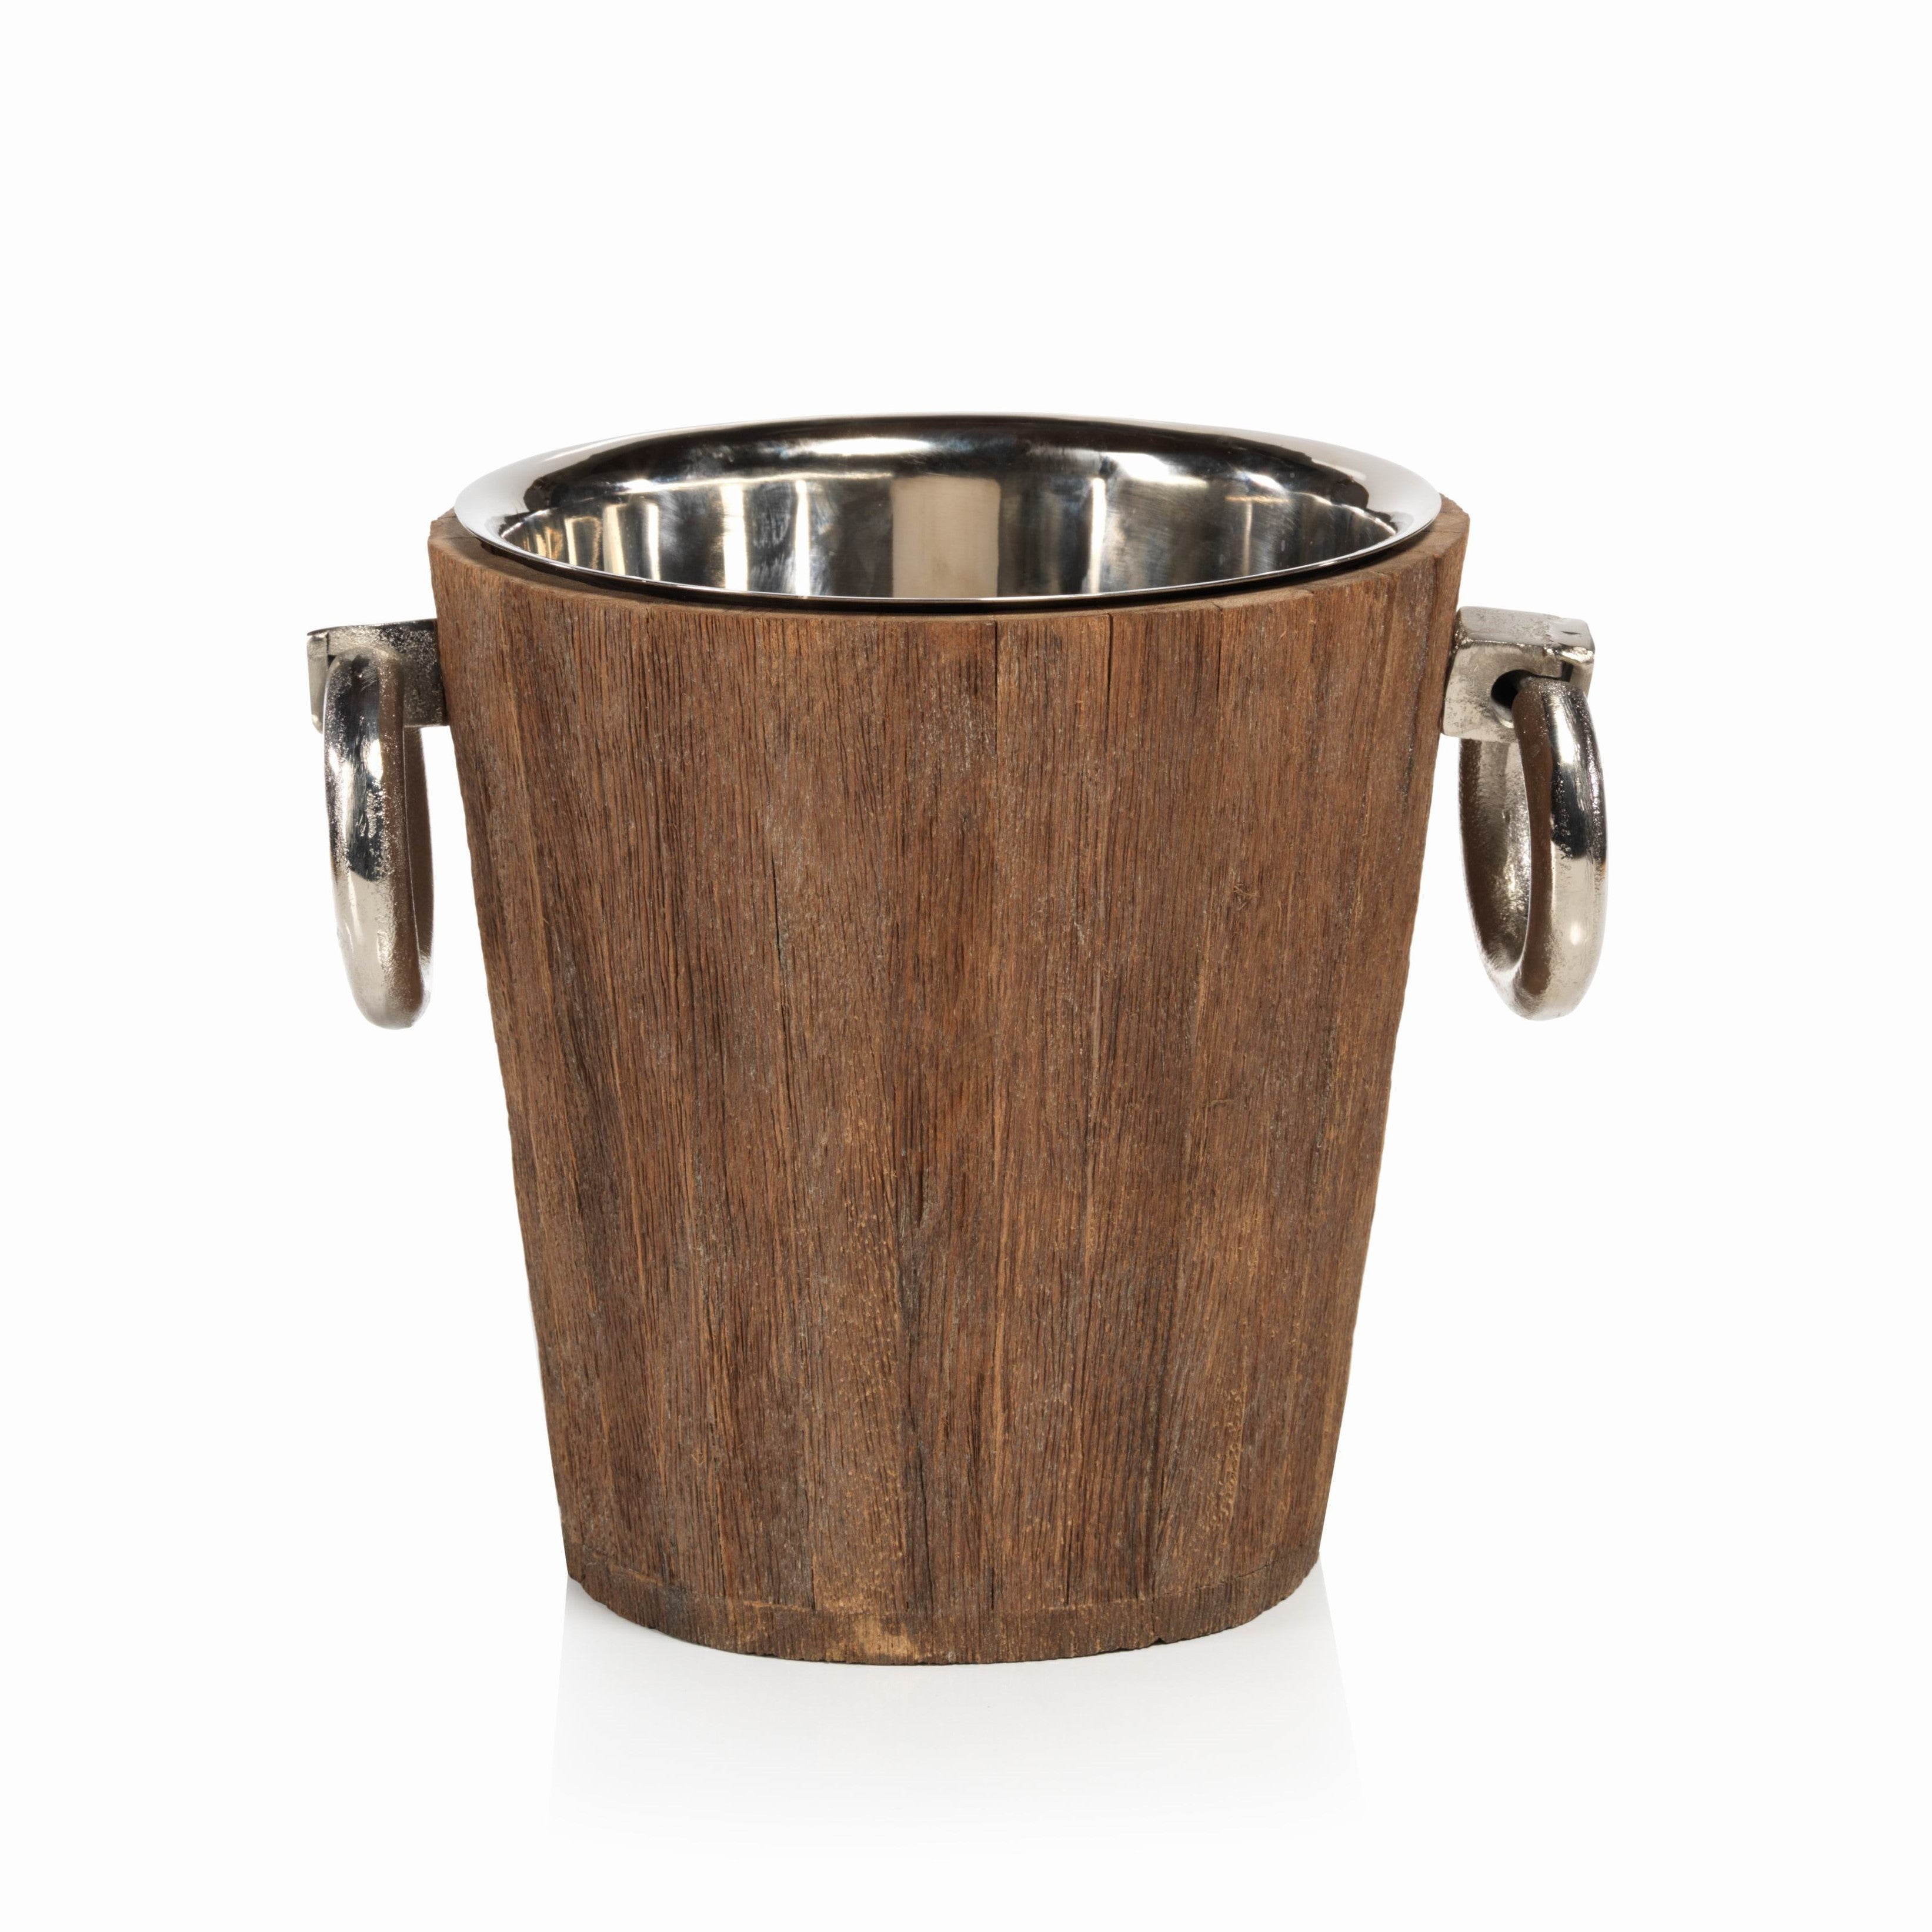 Reclaimed Wood/Metal Bucket - Large - CARLYLE AVENUE